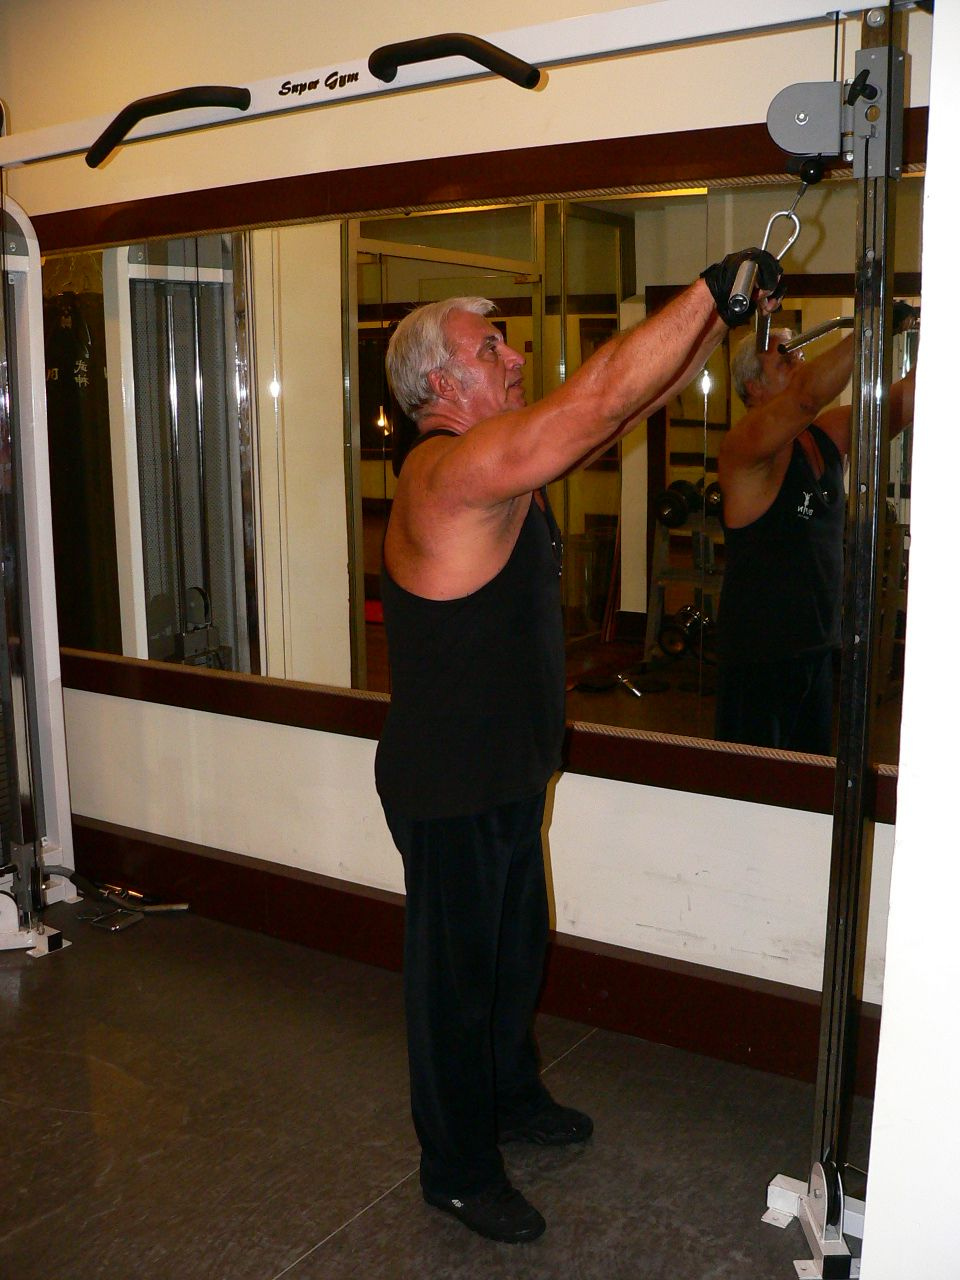 Straight Arms Pulldown